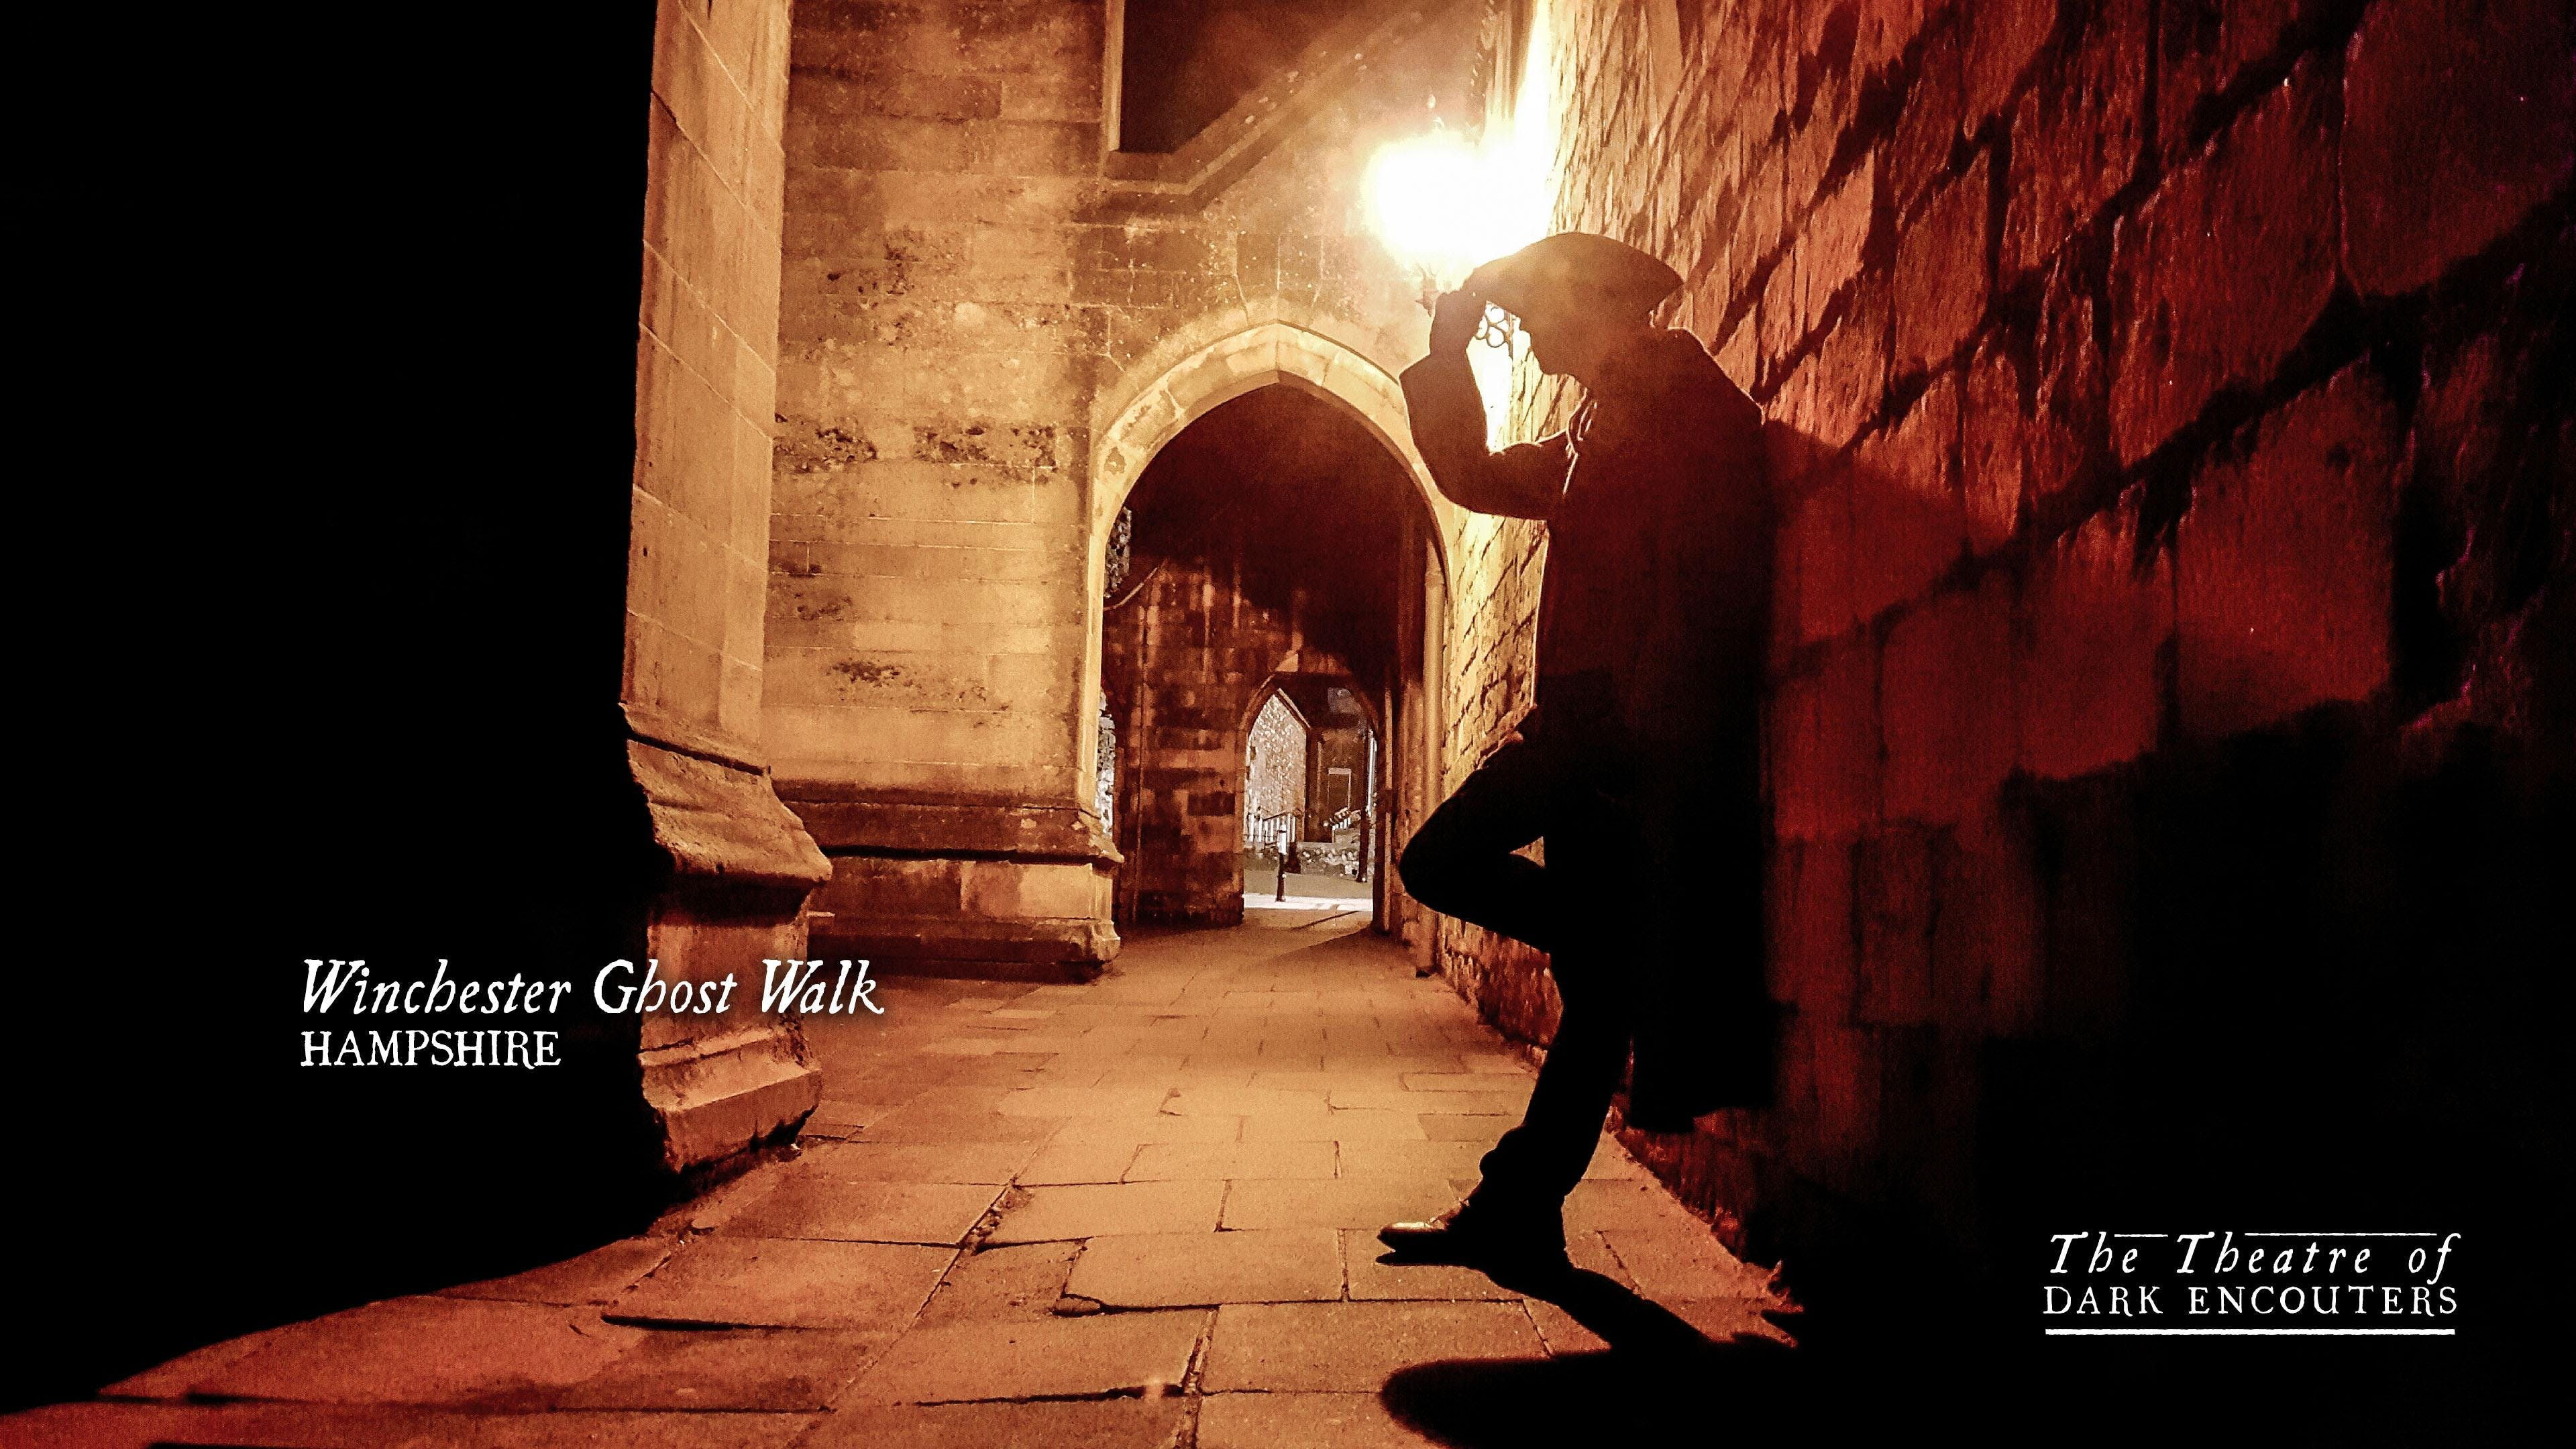 The Late Night Winchester Ghost Walk